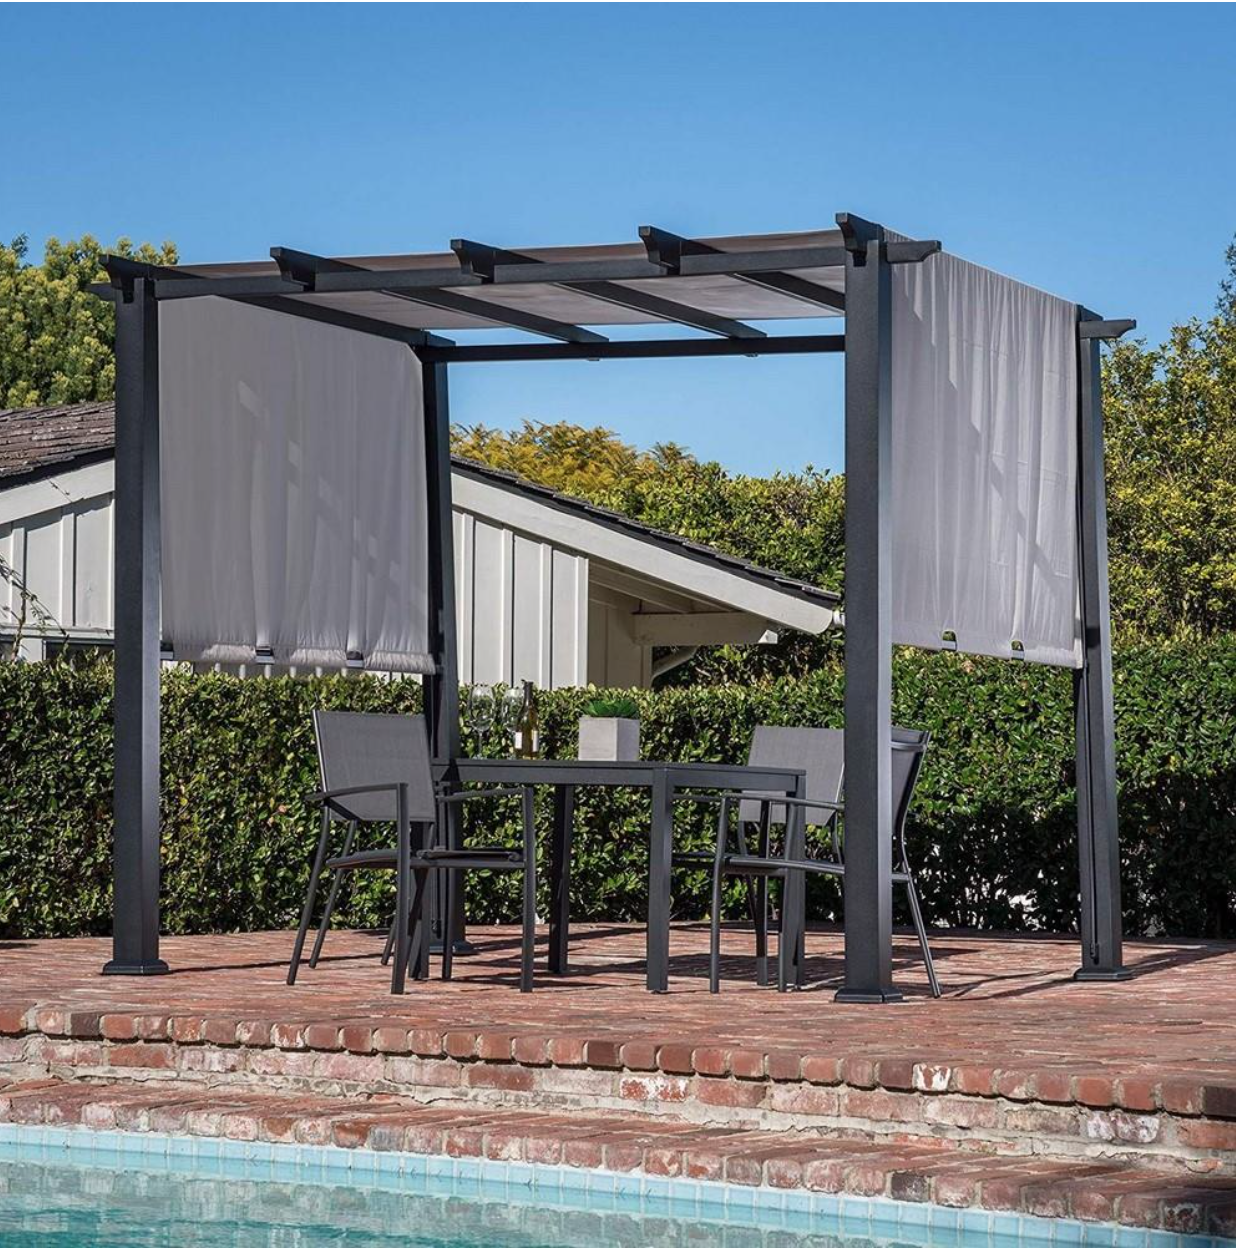 Incorporate Structure And Shade In Your Outdoor Area With An 8 X